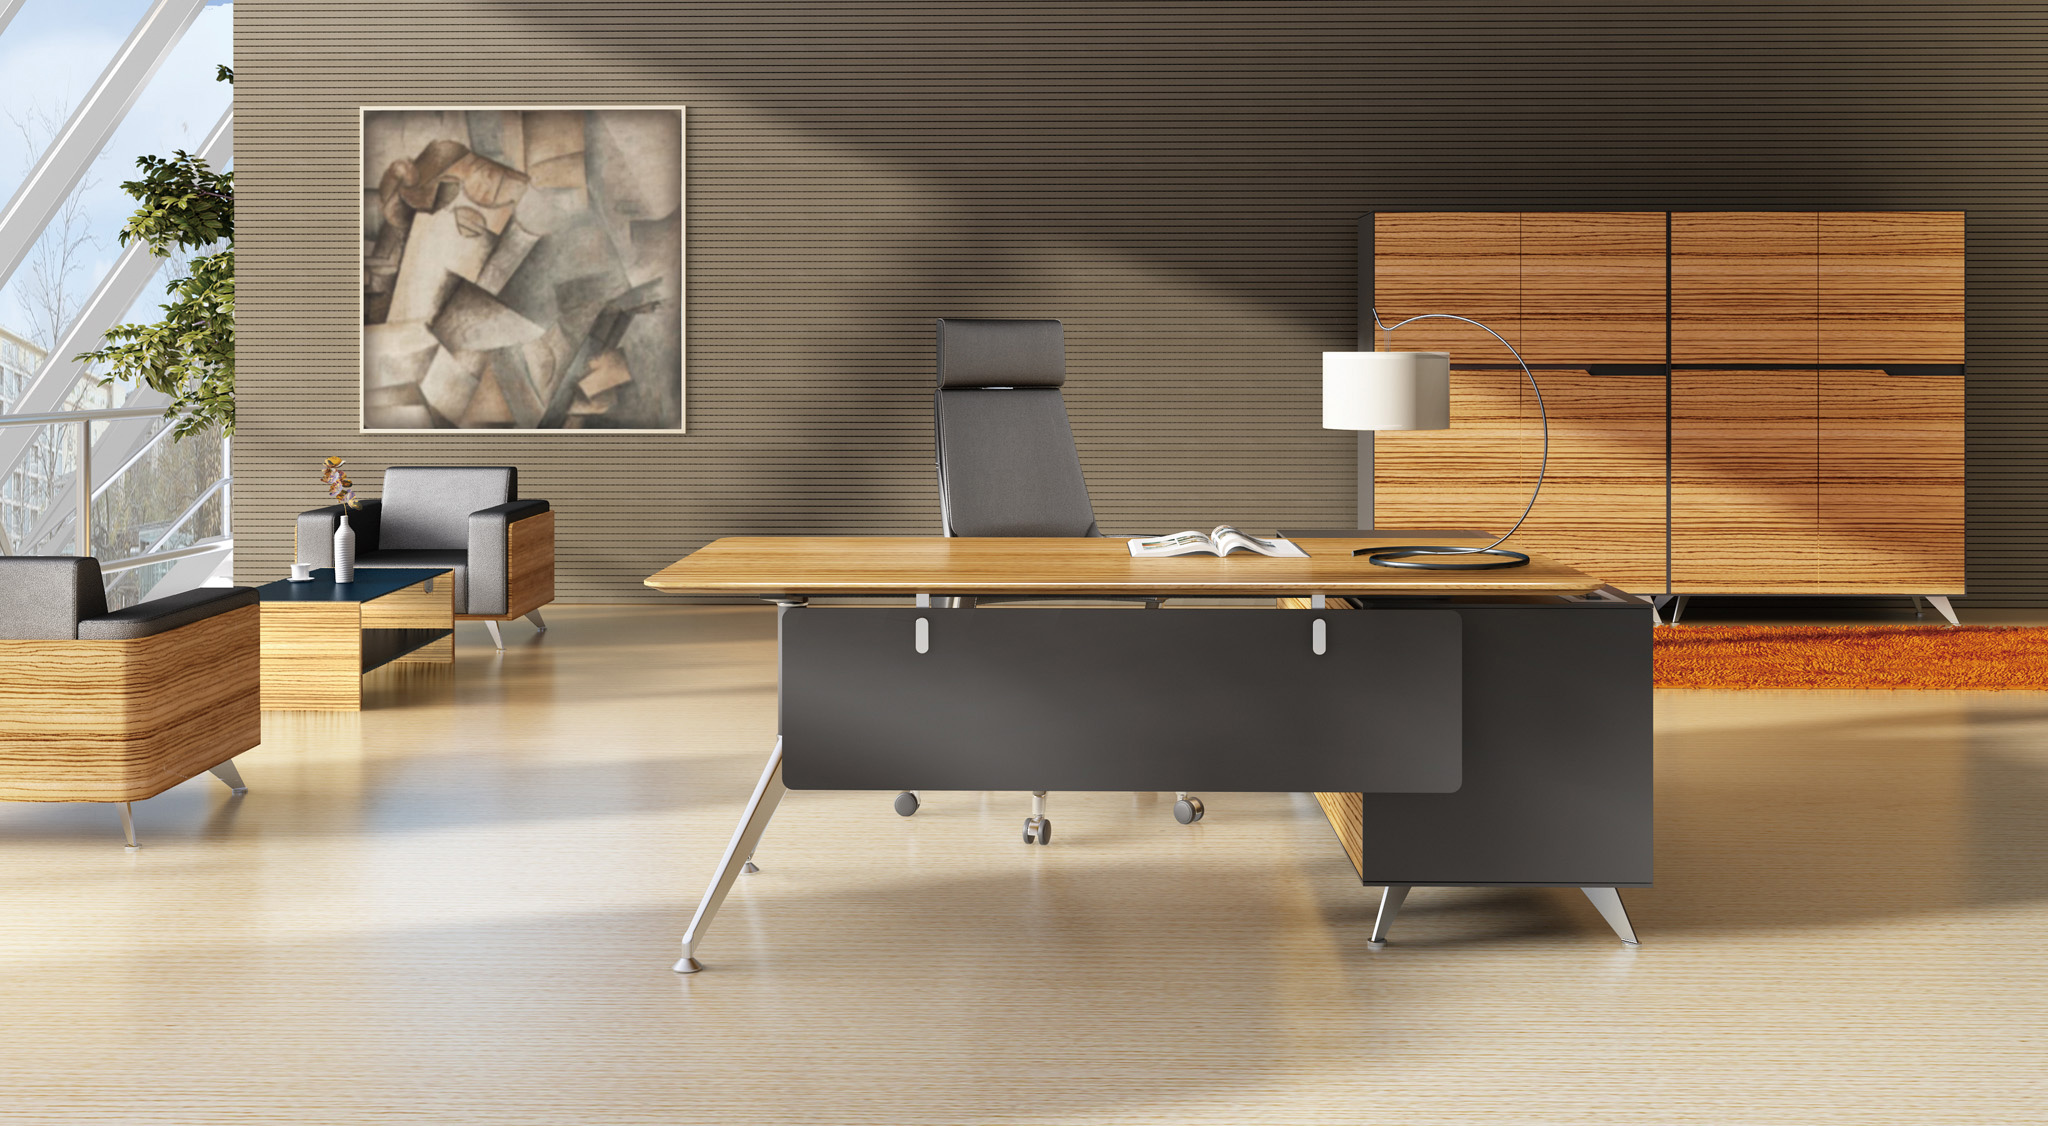 timber office furniture. DTC Damping Hinge, Timber Veneer Top, Shark Nose Edging, Aluminium Feet. Buffet Comes With 2 Drawers \u0026 Doors, Soft Closing, Lockable Drawers. Office Furniture